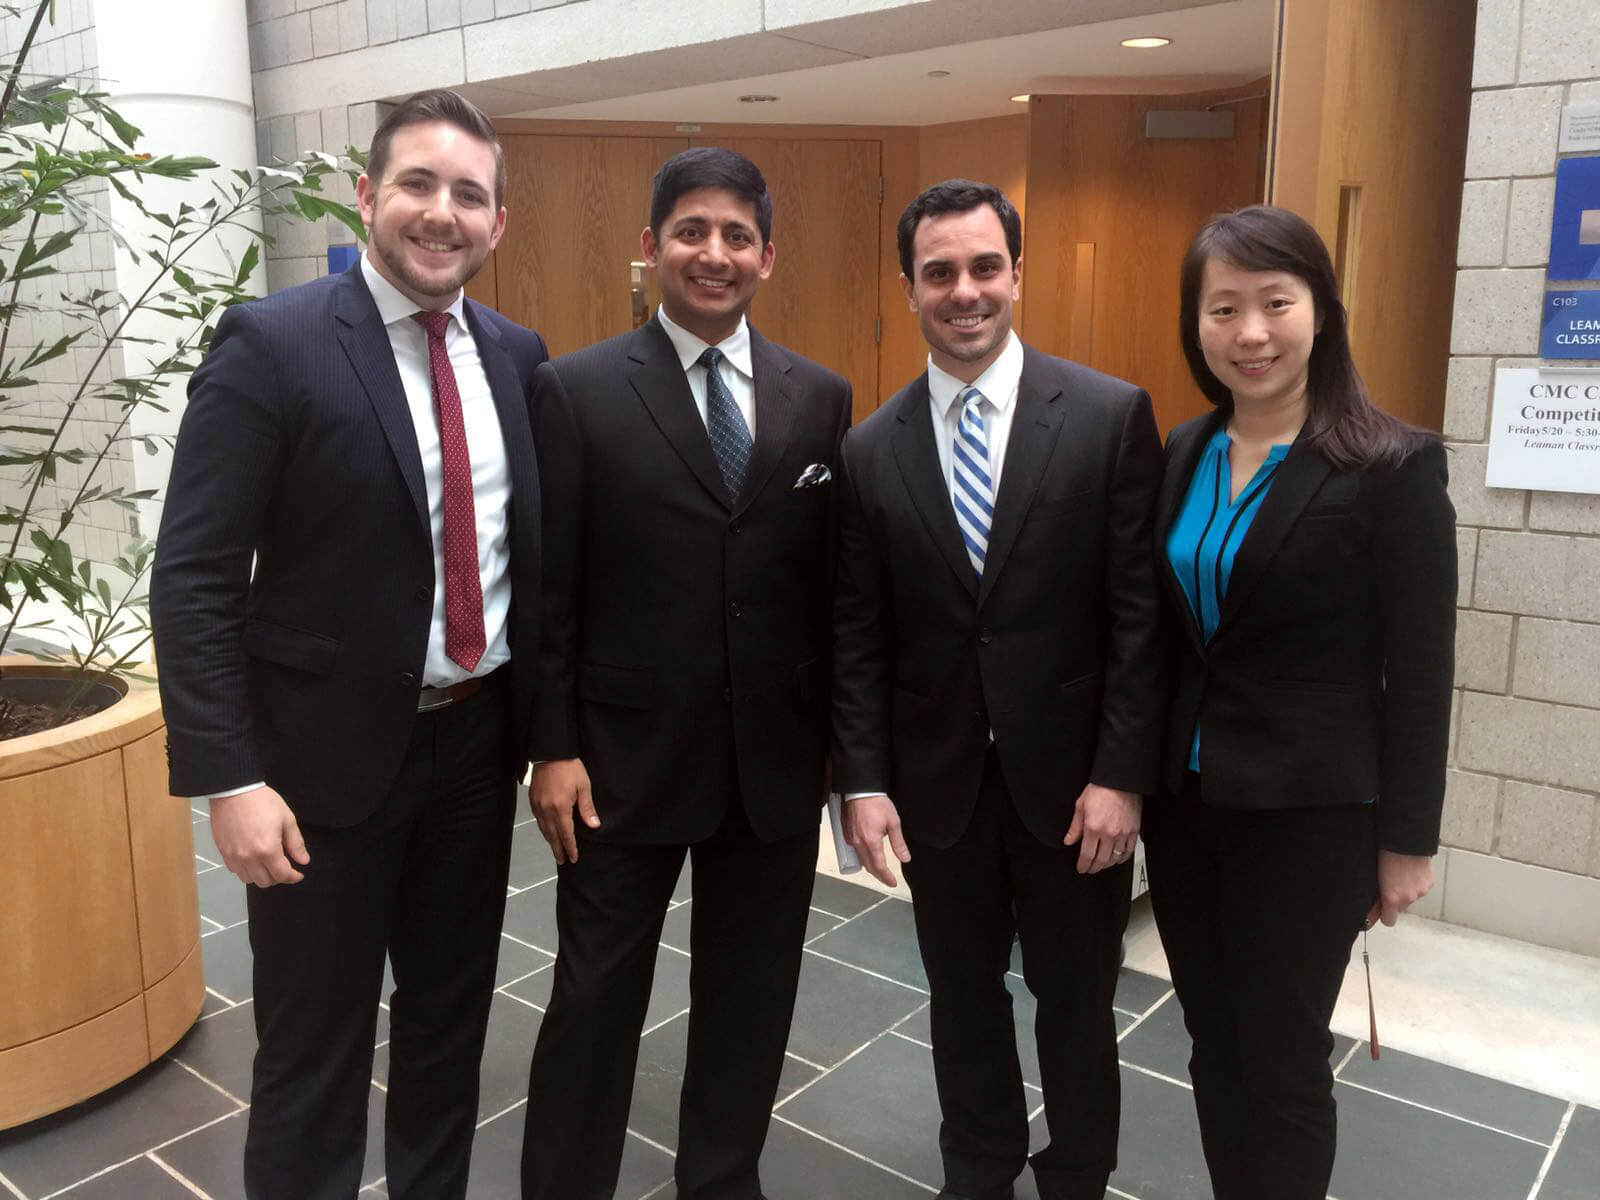 the 4 team members in suits after the case competition presentation